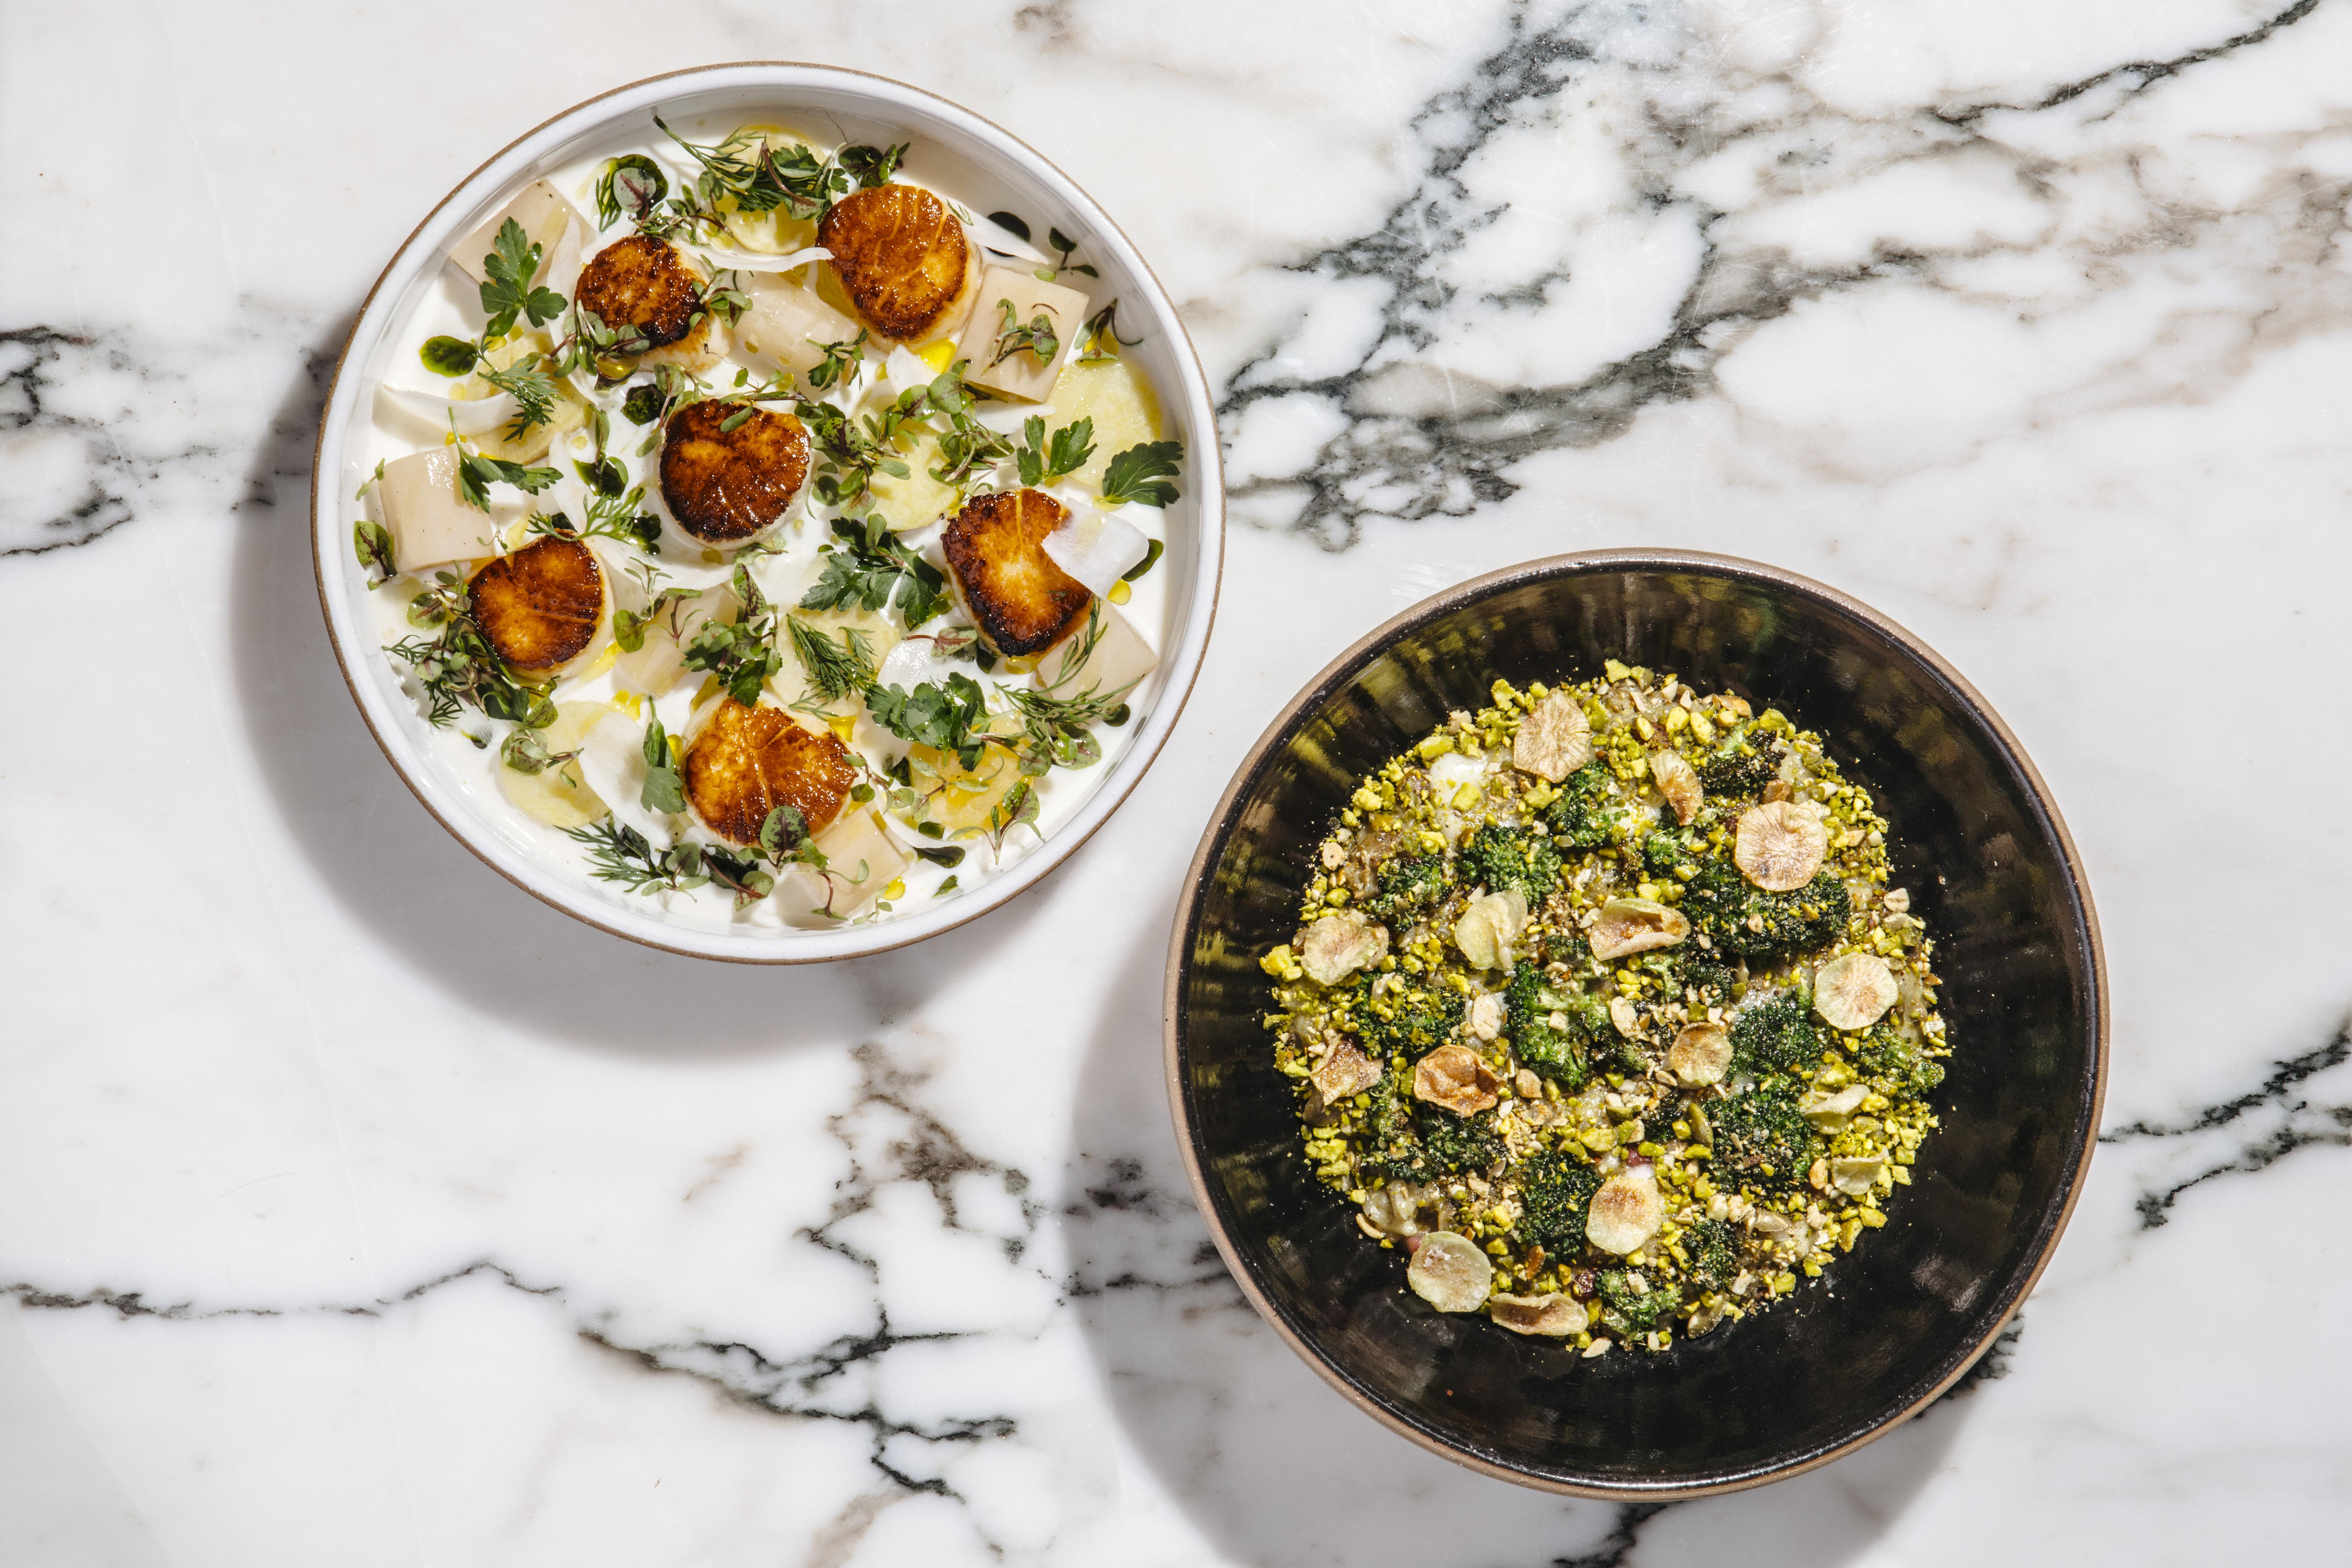 Two dishes are plated and served atop a white marble surface. The dish on the left is light, with greens and six scallops. The dish on the right appears more dense.